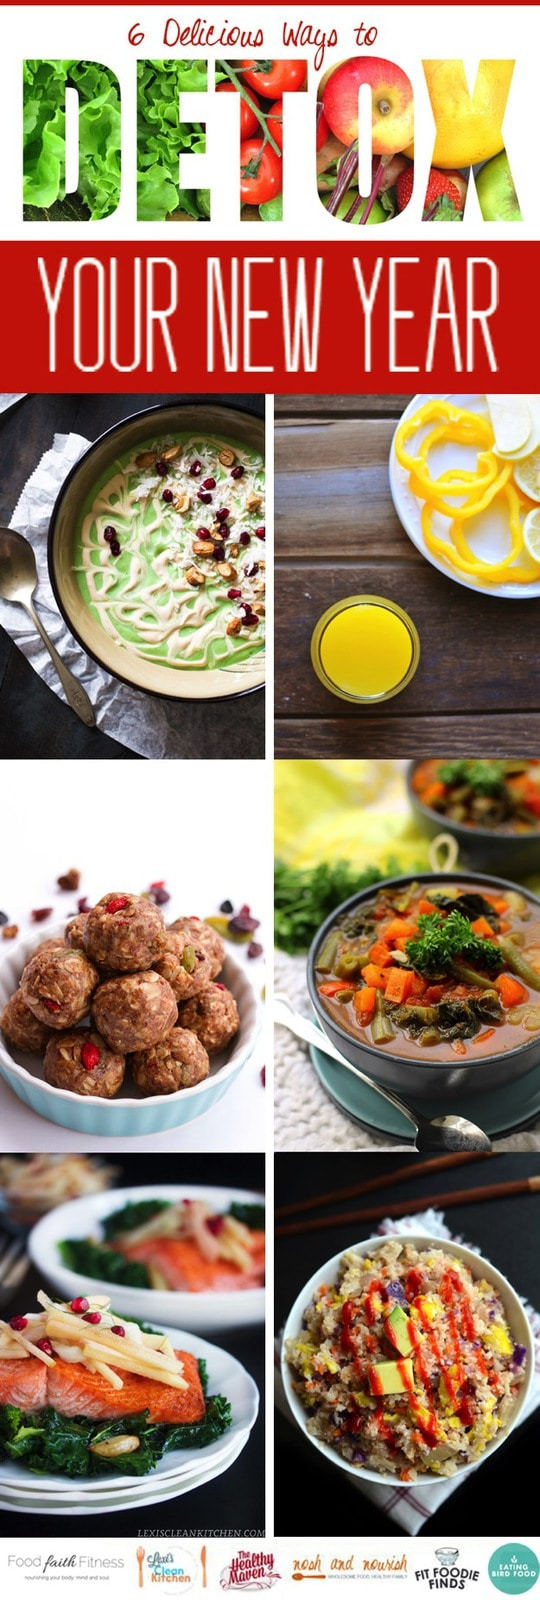 6 Delicious Detox Recipes for the New Year